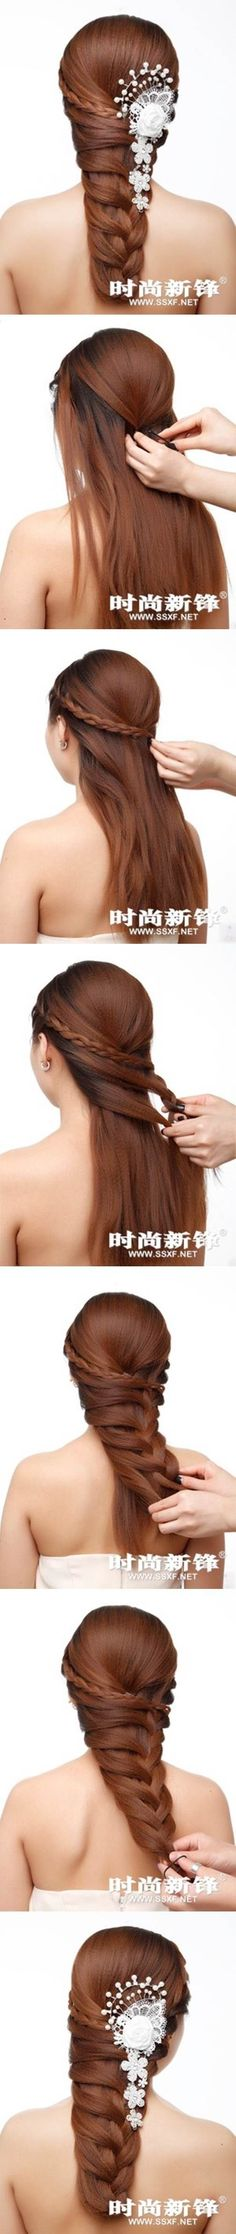 How To Make A Asymmetrical Braid Hairstyle Pictures, Photos, and Images for Facebook, Tumblr, Pinterest, and Twitter